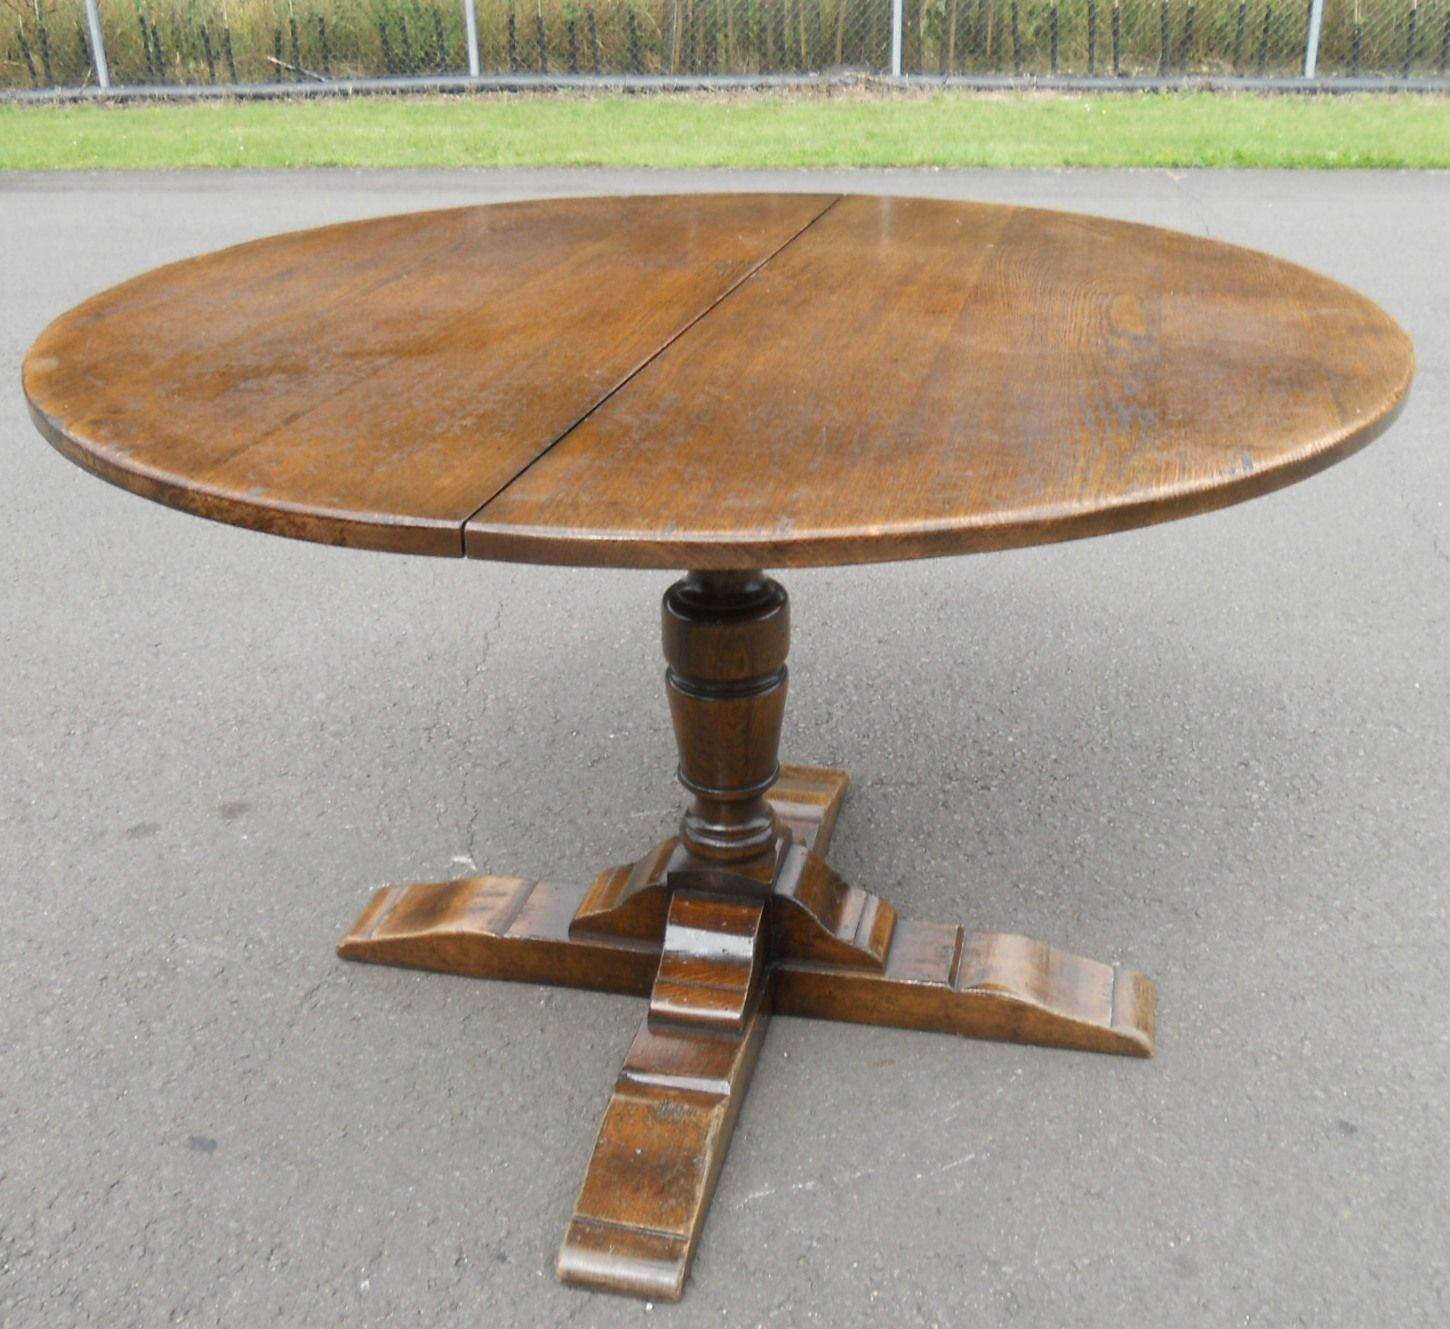 large round oak dining table 8 chairs wedding reception chair covers and sashes sold pedestal extending to seat eight